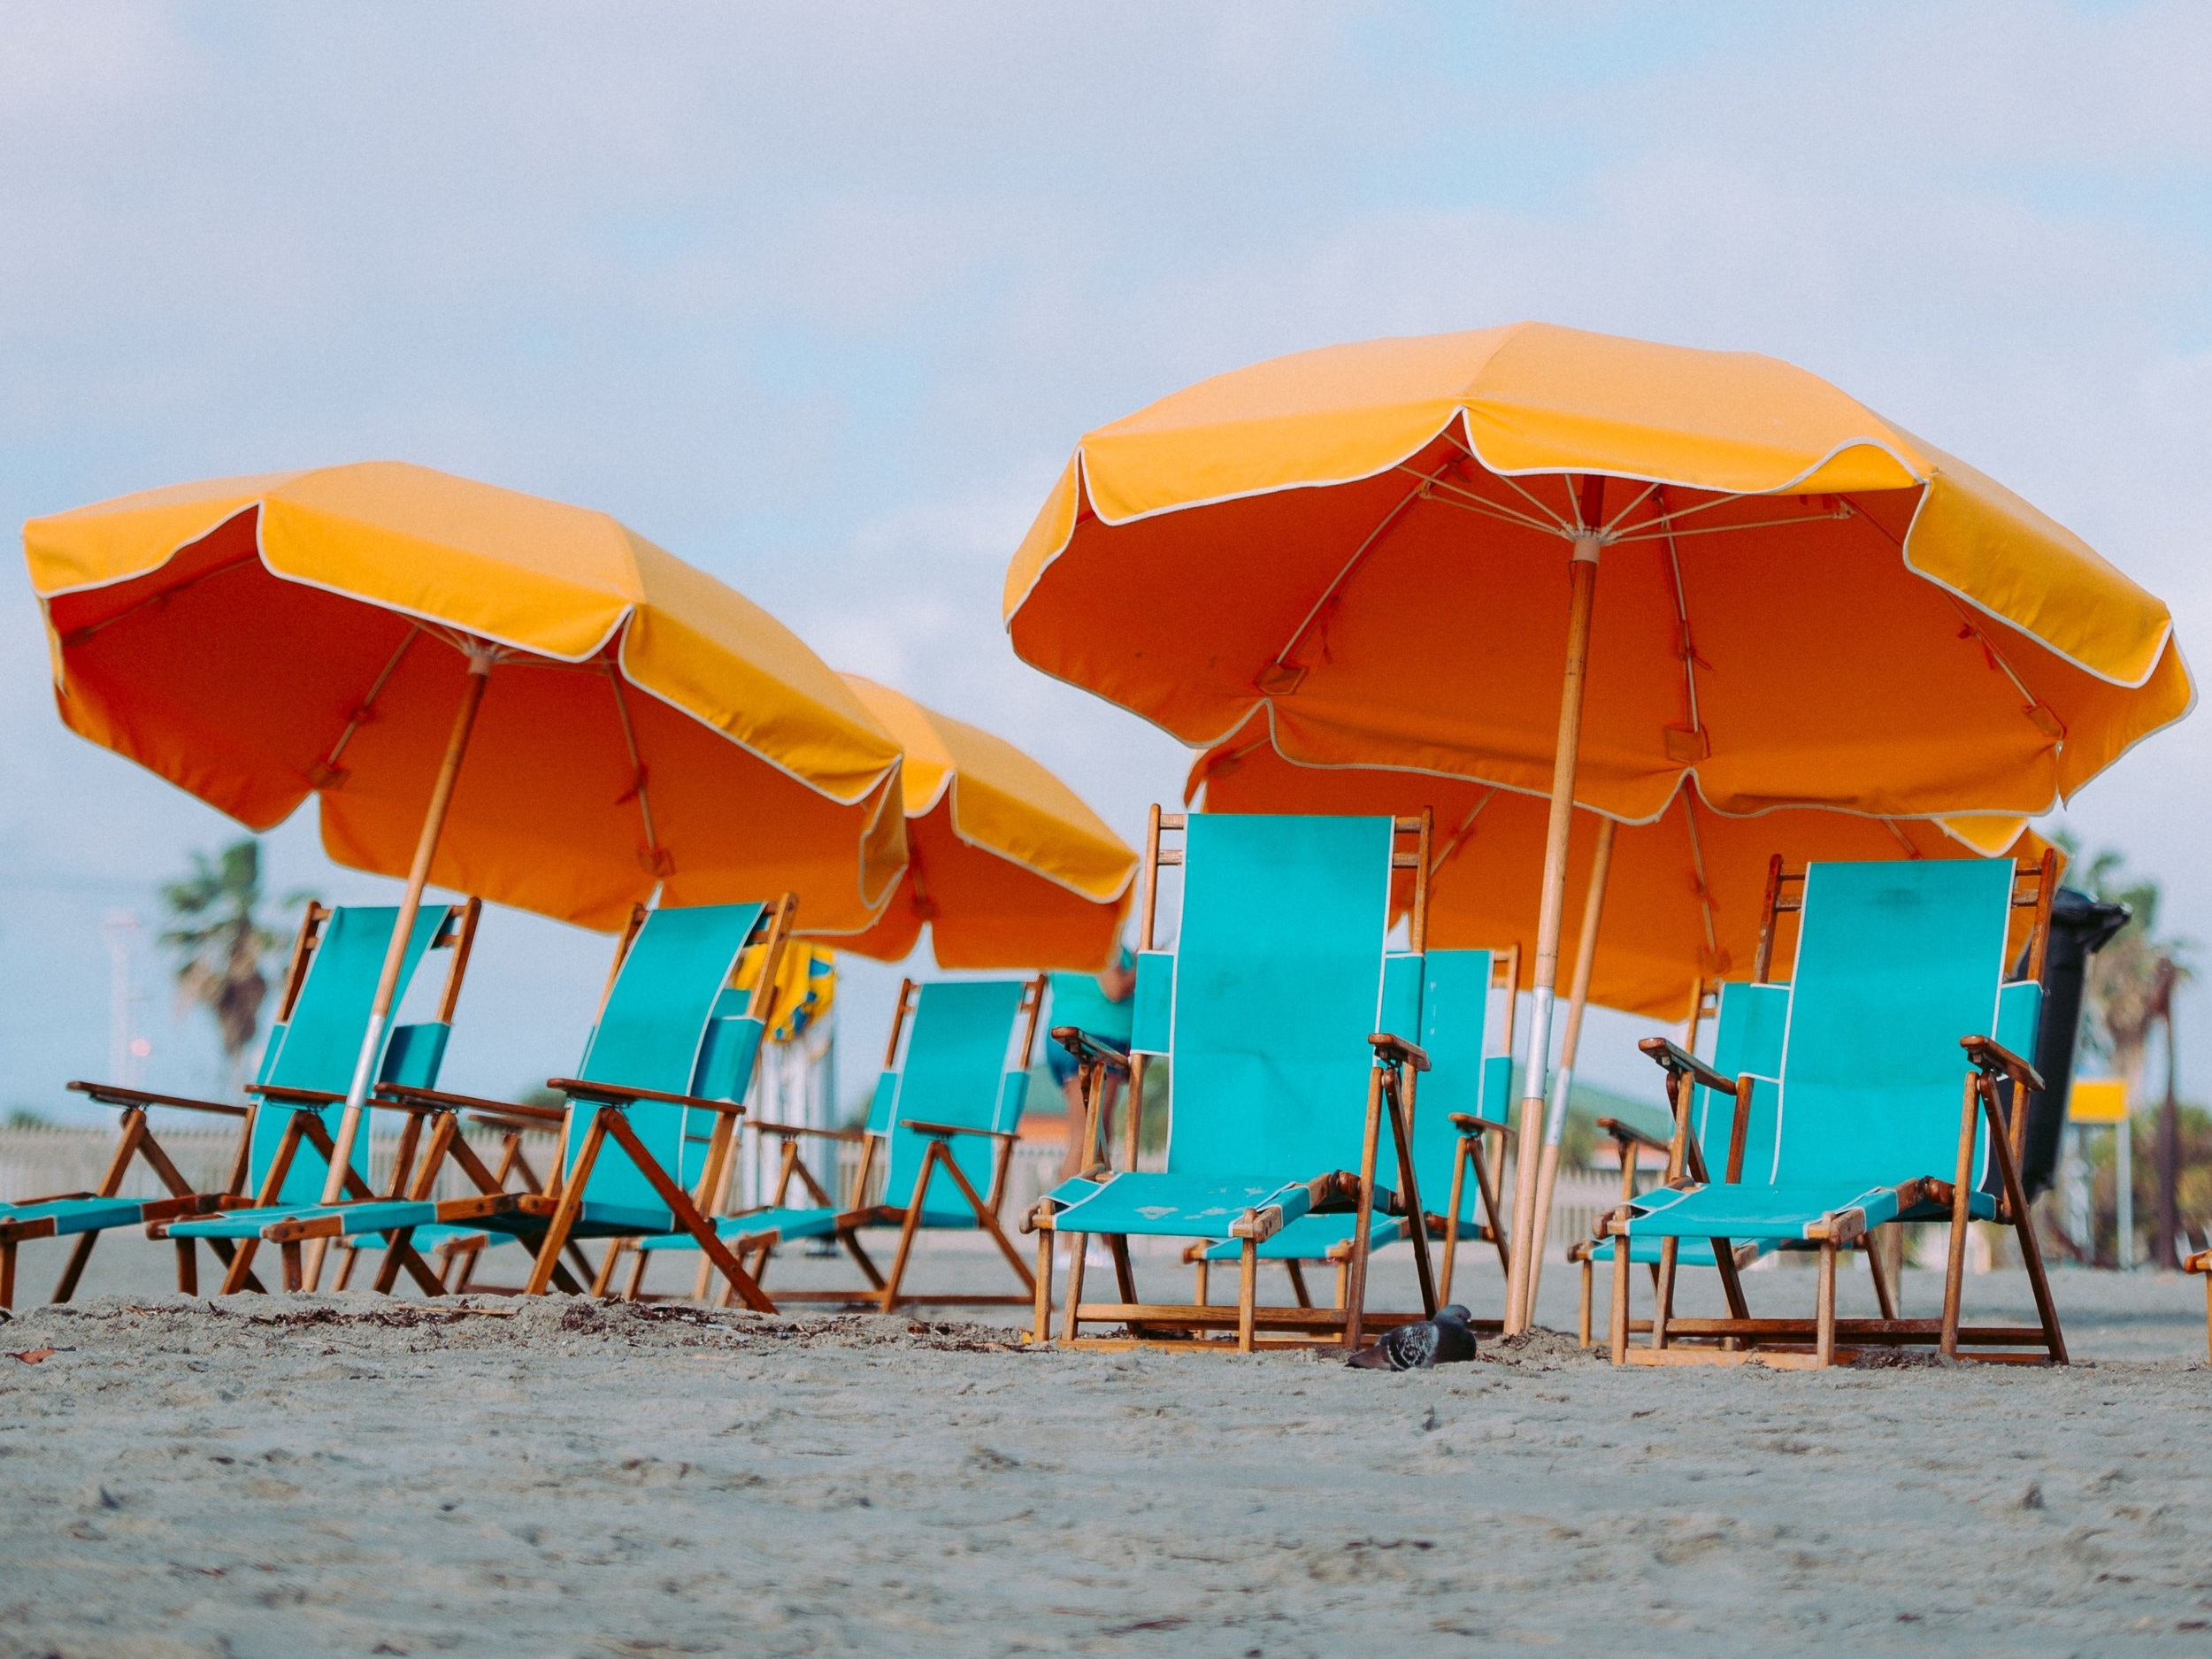 A beach setting with bright blue beach chairs shaded by bright yellow umbrellas